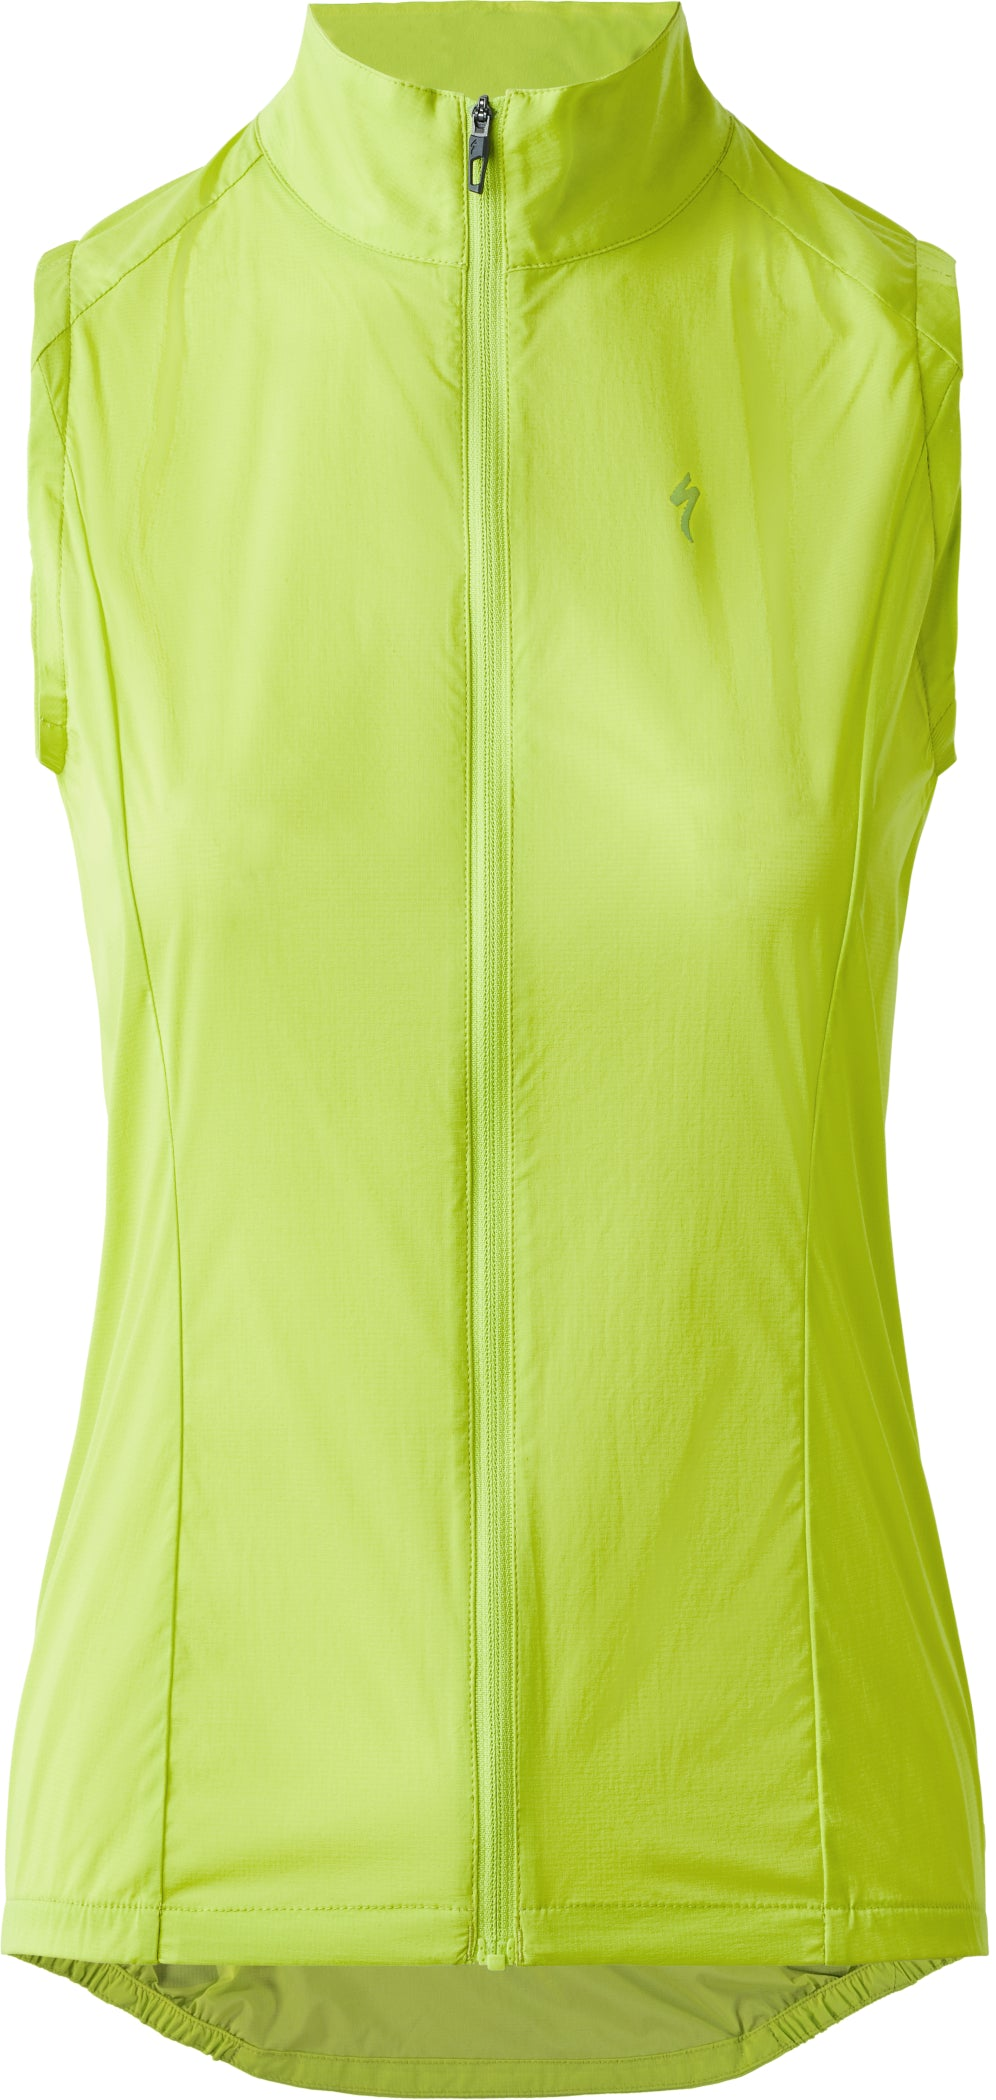 Women's HyprViz Deflect Wind Vest